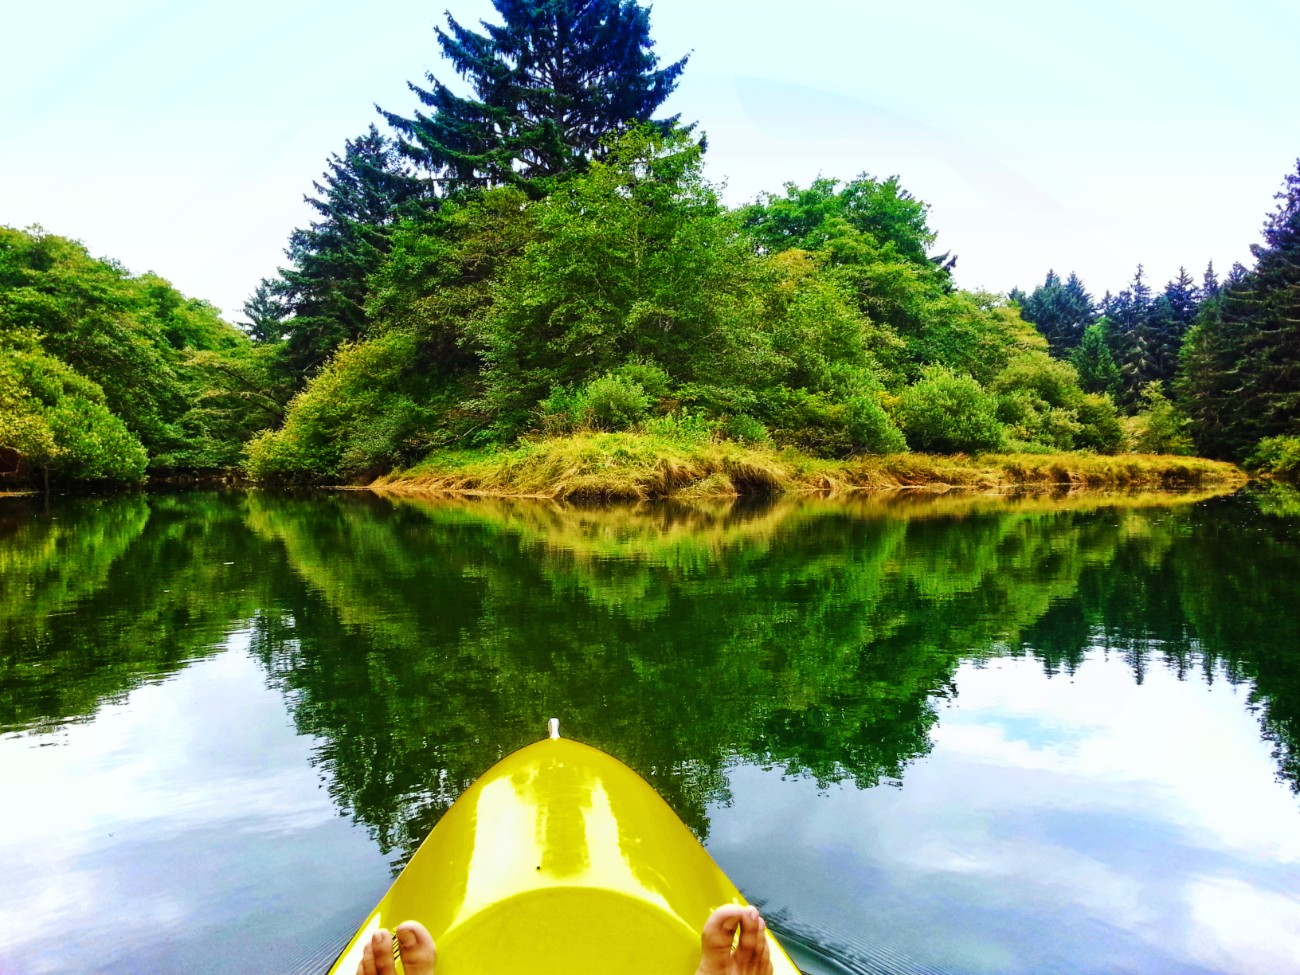 Reflections while Kayaking on Quilute River La Push Olympic Peninsula 2